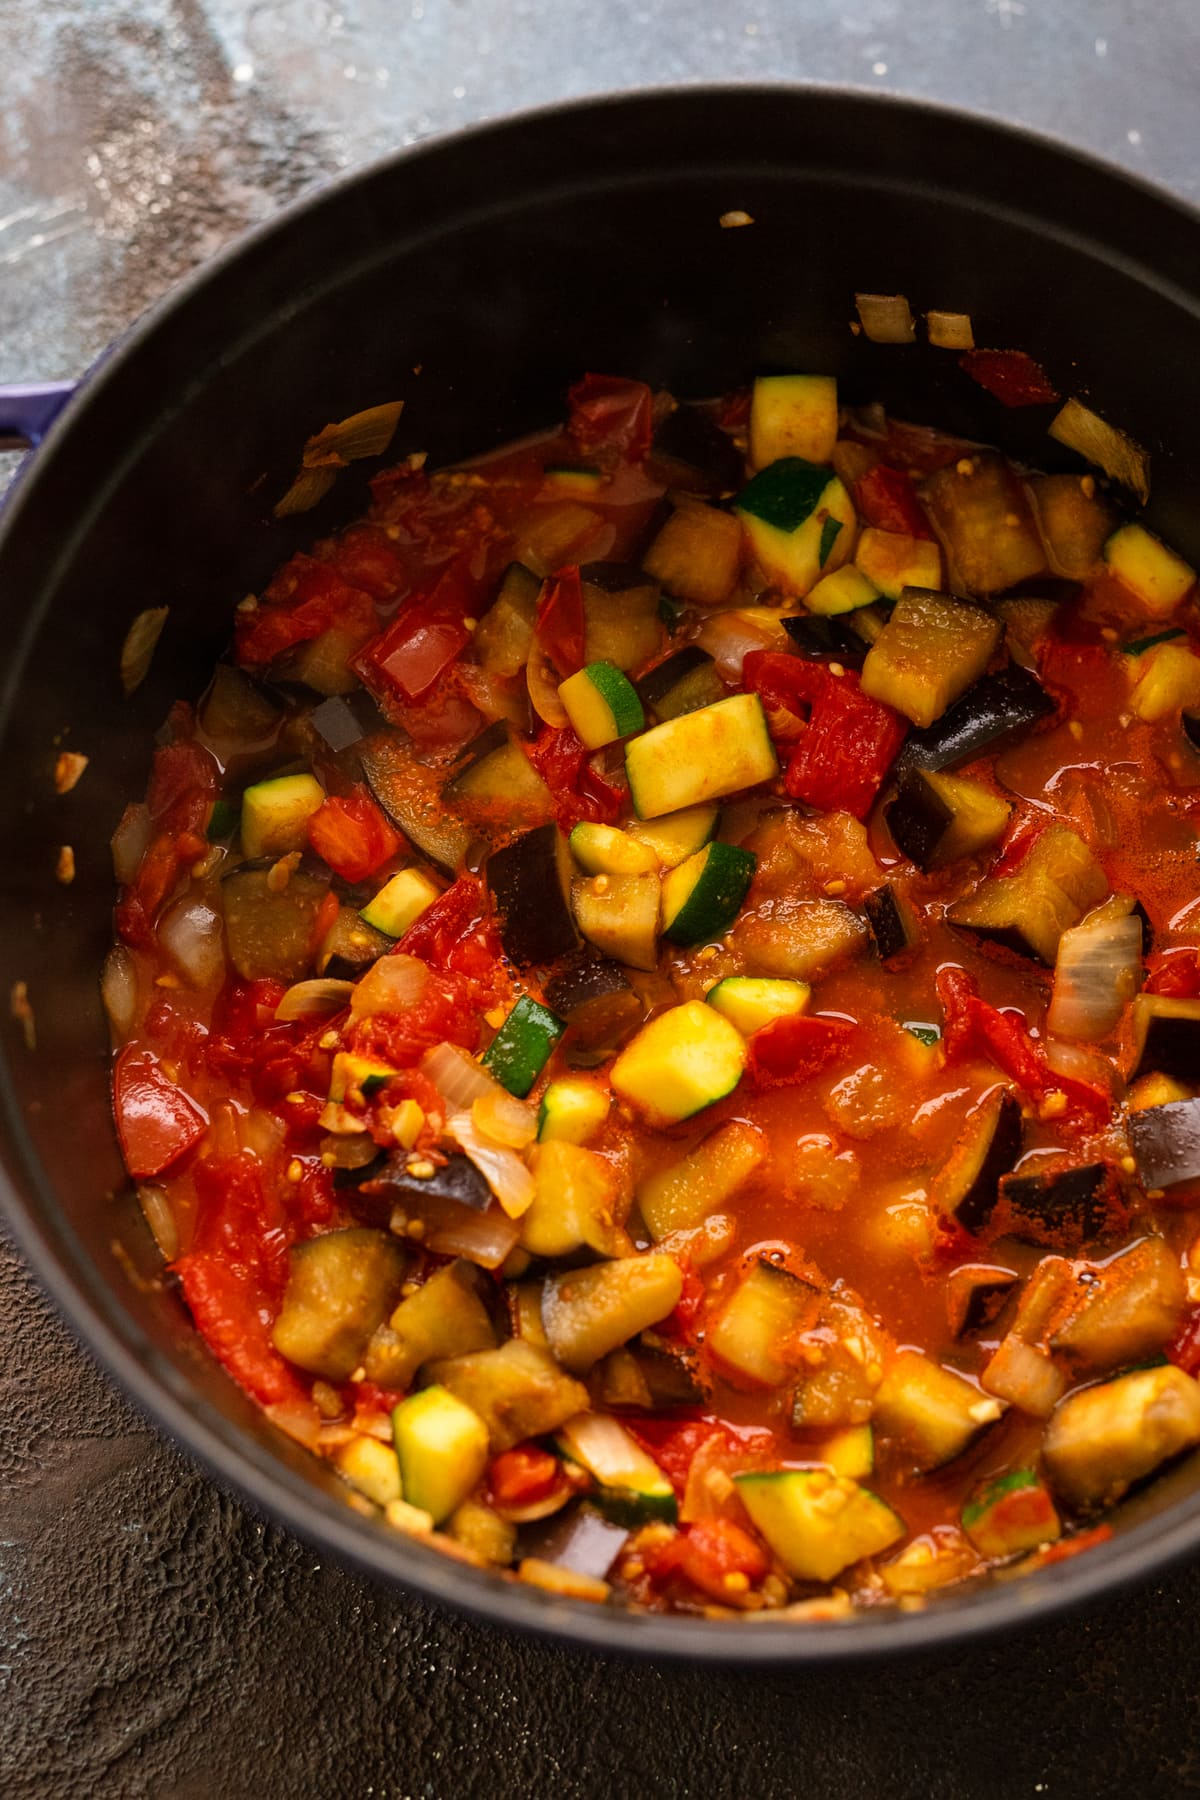 Ratatouille being simmered in a large black cast iron dutch oven pot.